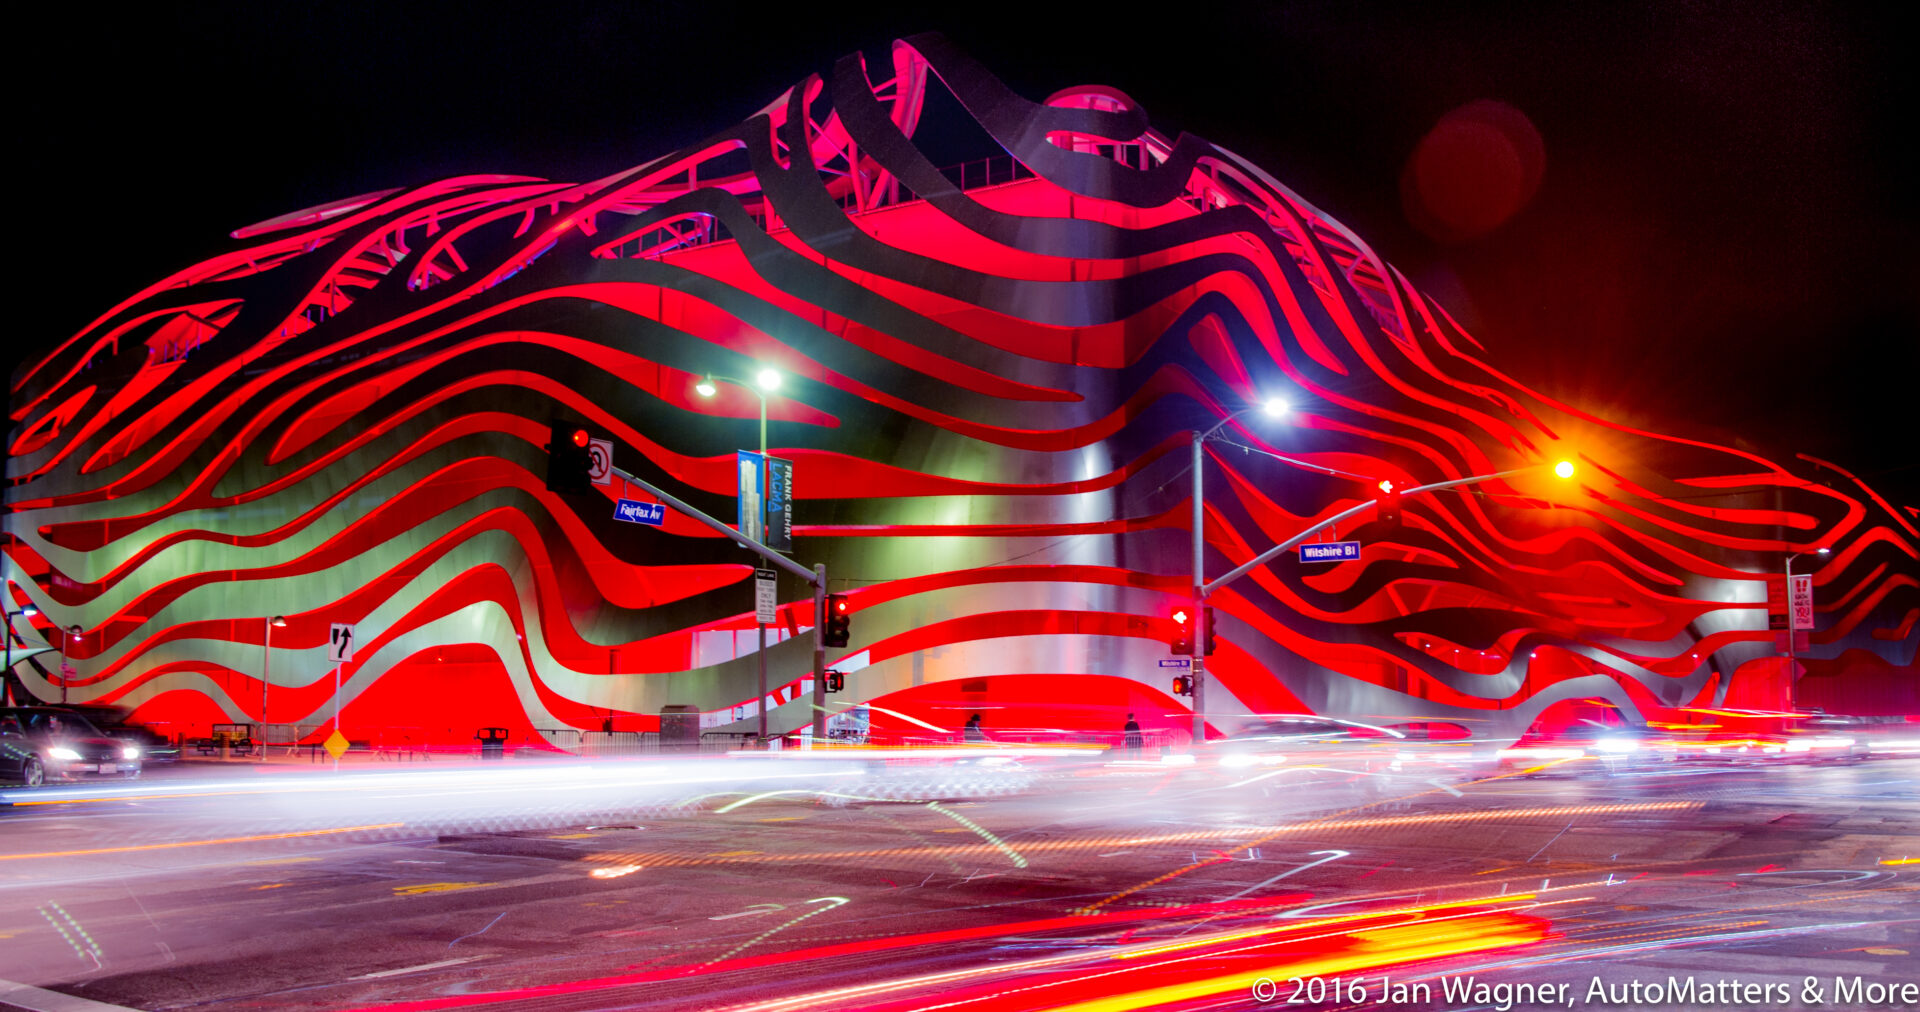 01288-20151203 Petersen Automotive Museum-Grand Reopening-Media Day-Los Angeles-D3s-1of2